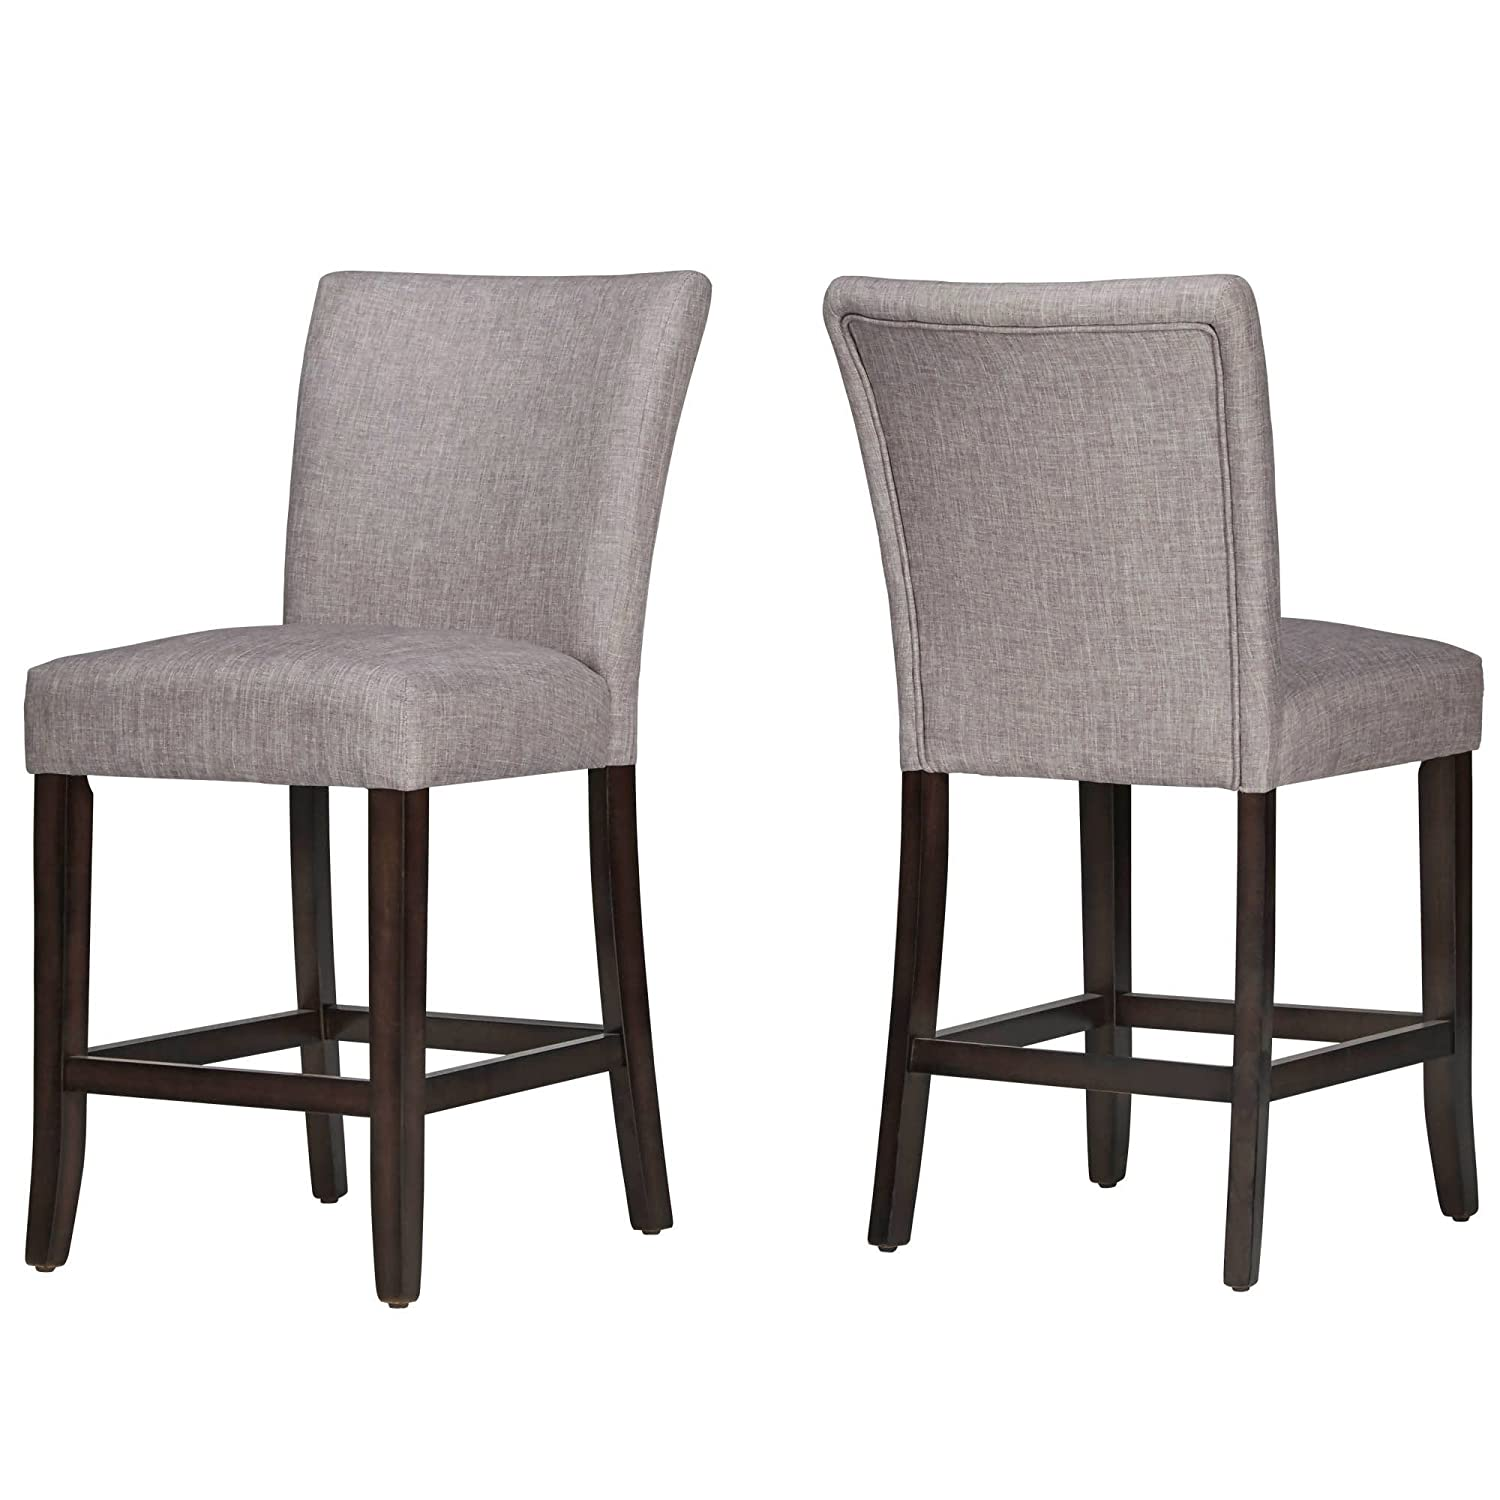 Modhaus living modern classic style wooden legs counter height armless bar chairs espresso finish linen cushioned seats living room decor set of 2